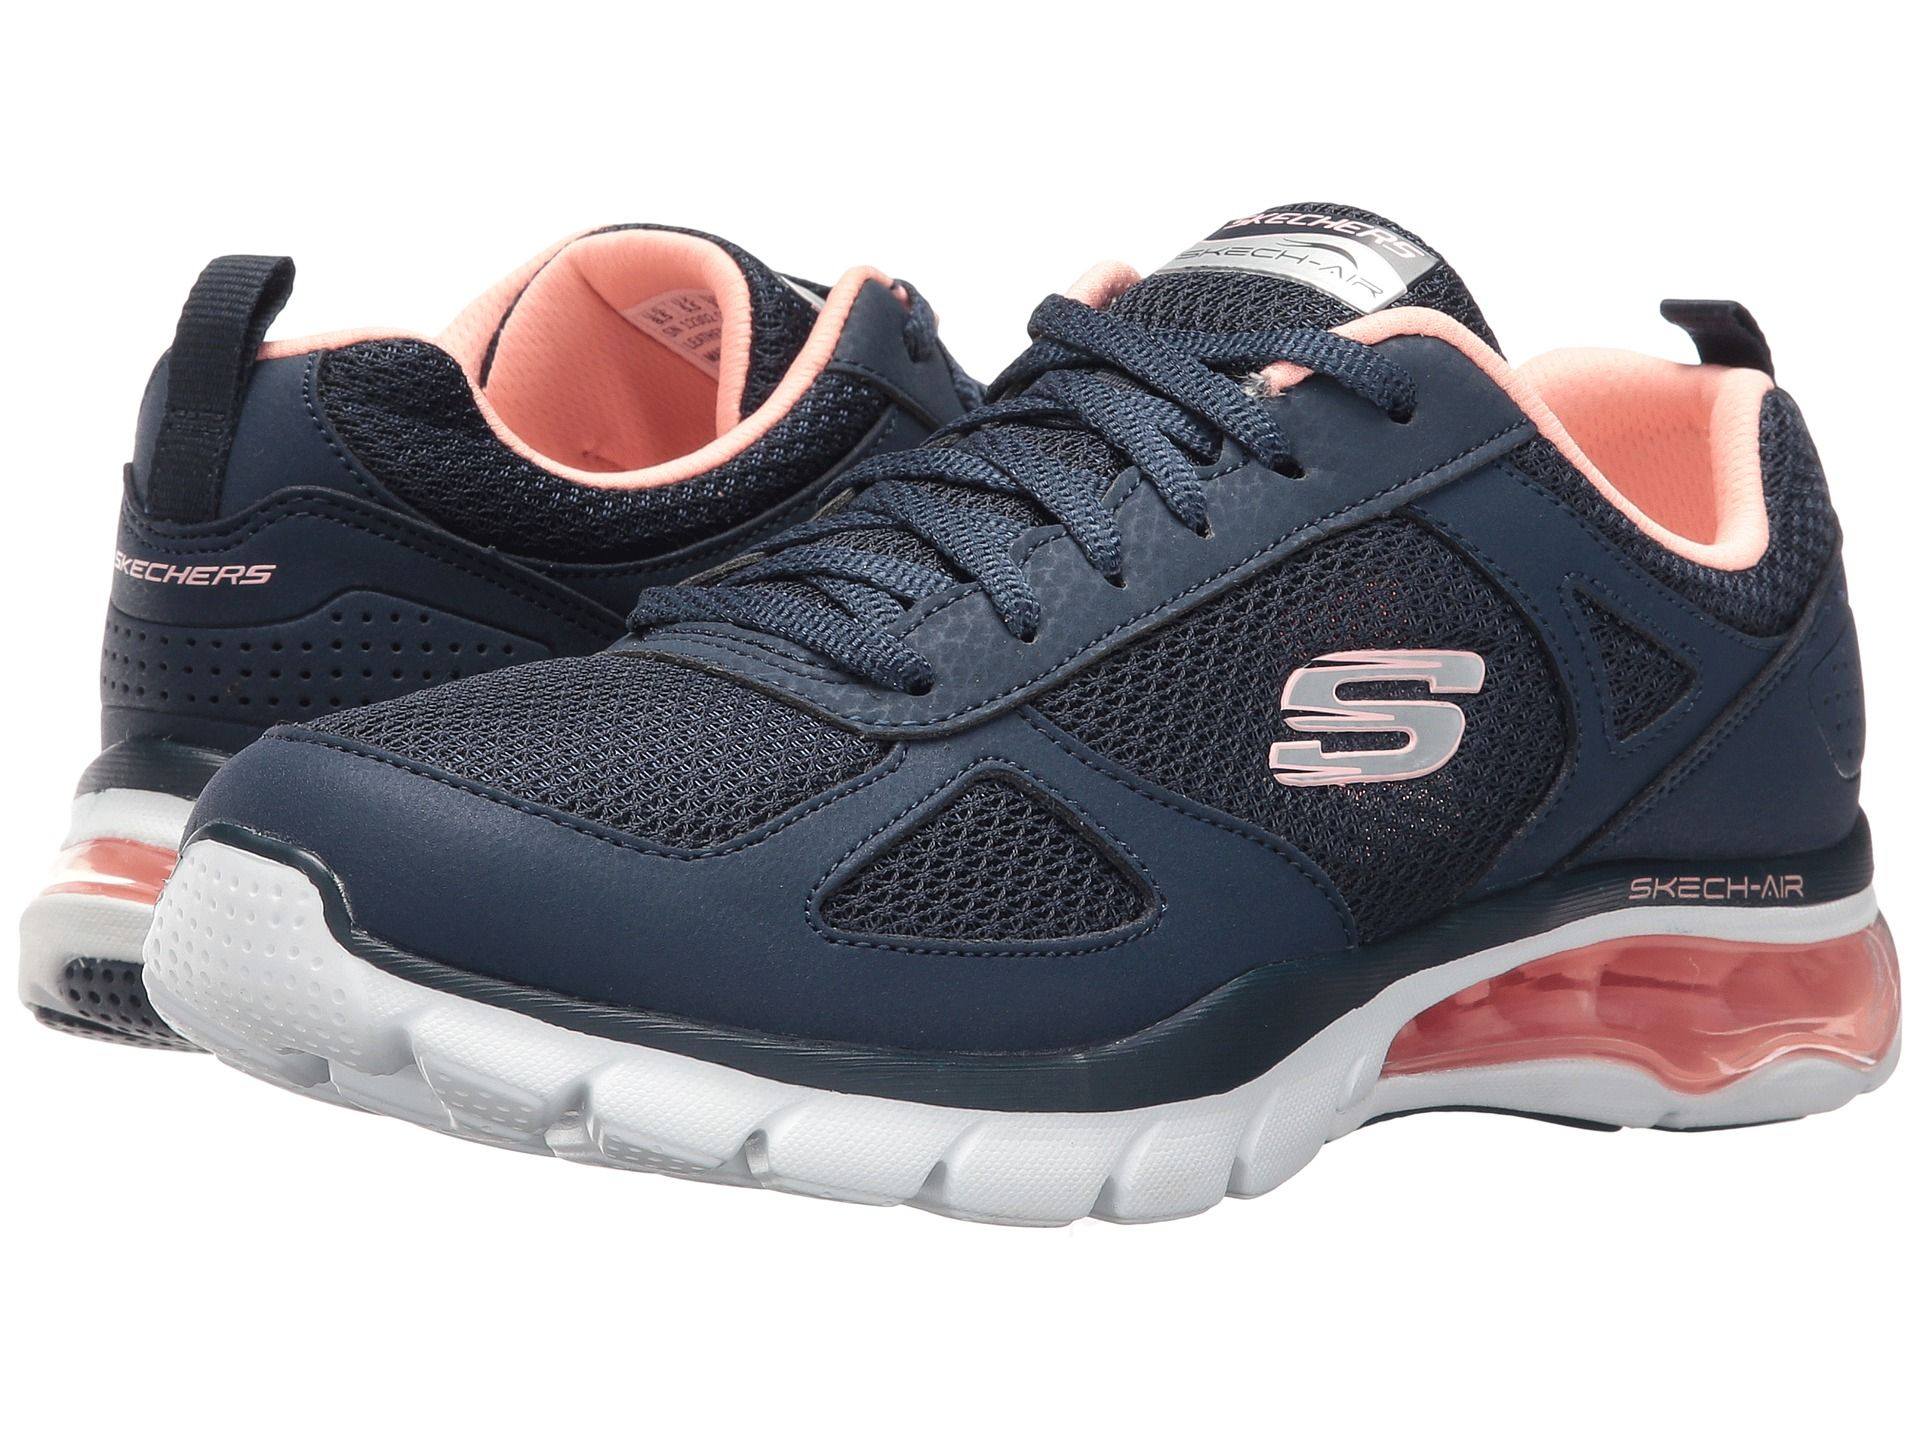 skechers shoes zappos